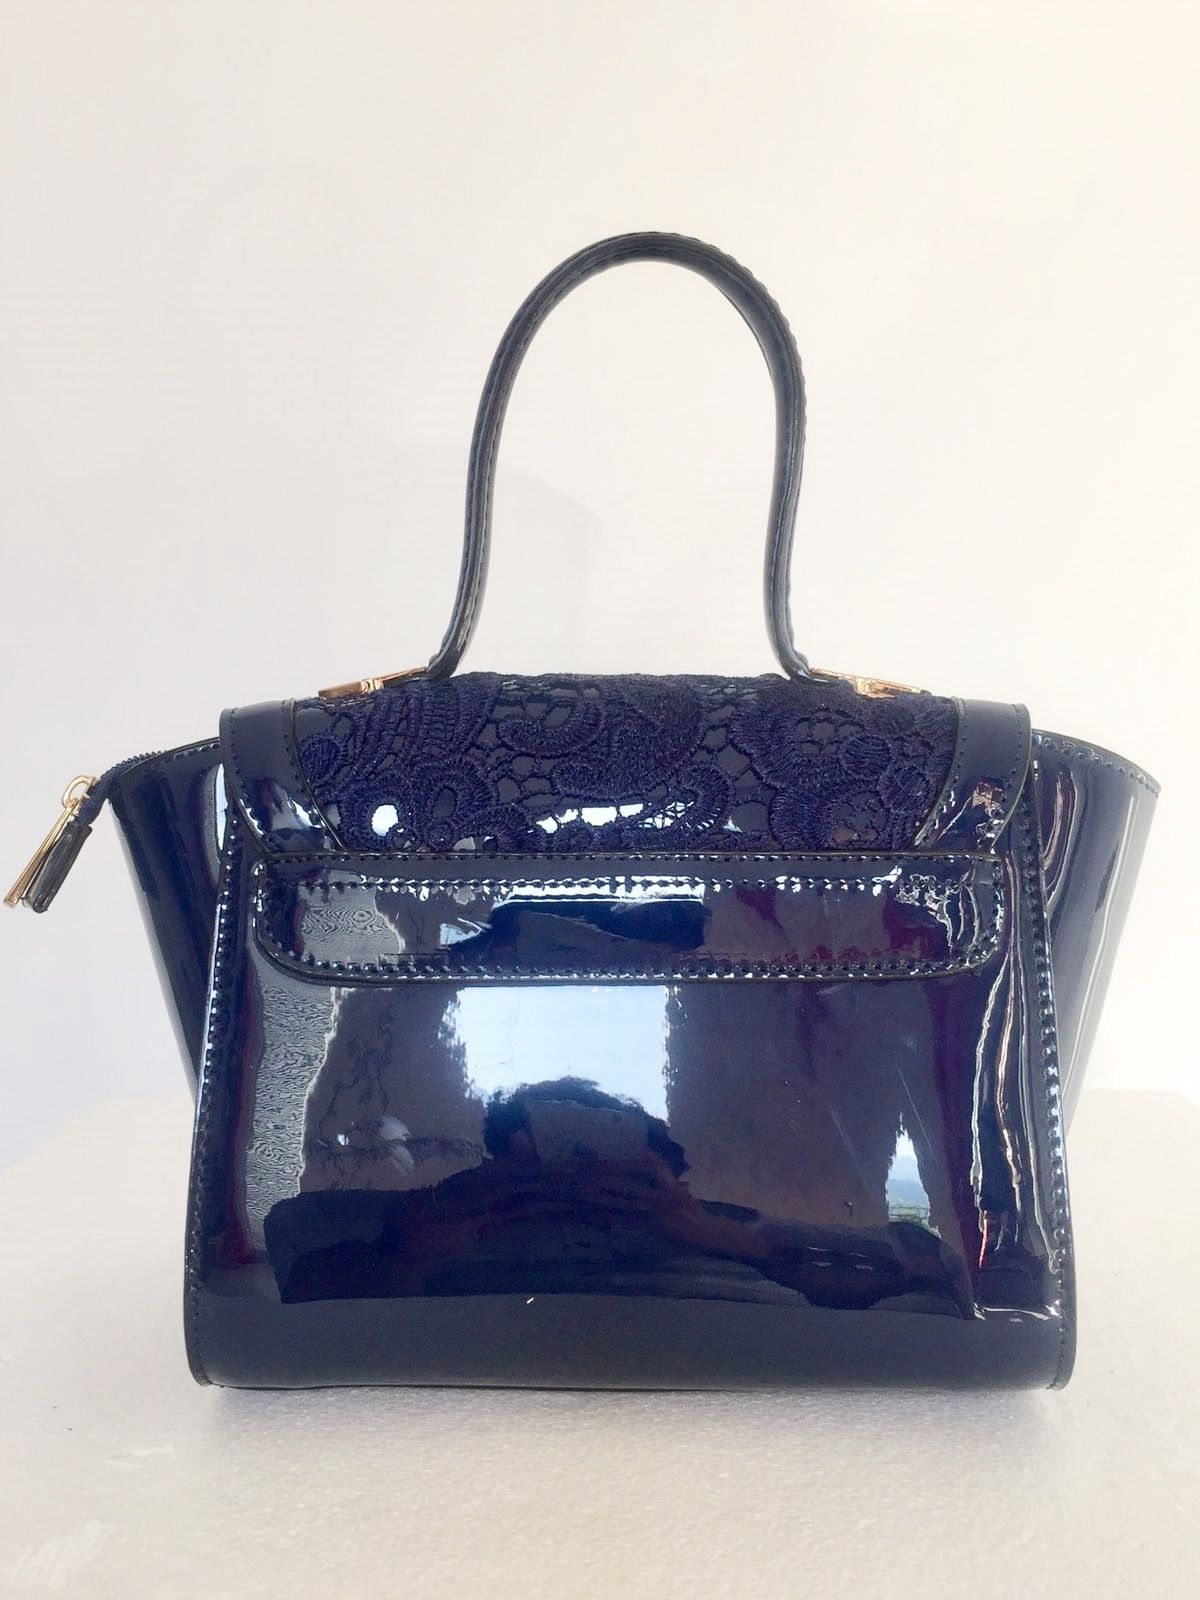 Bag patent leather and lace Cod.1019